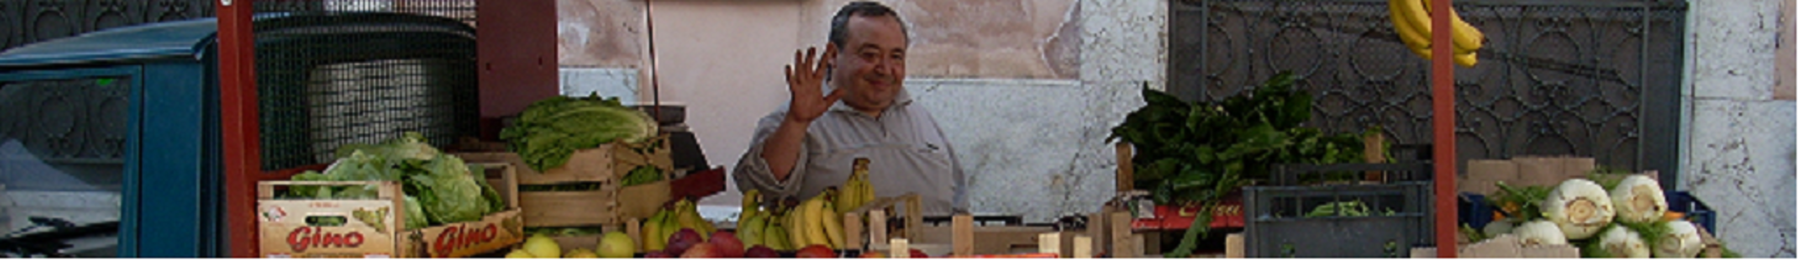 Sicily banner Fruit stall.png